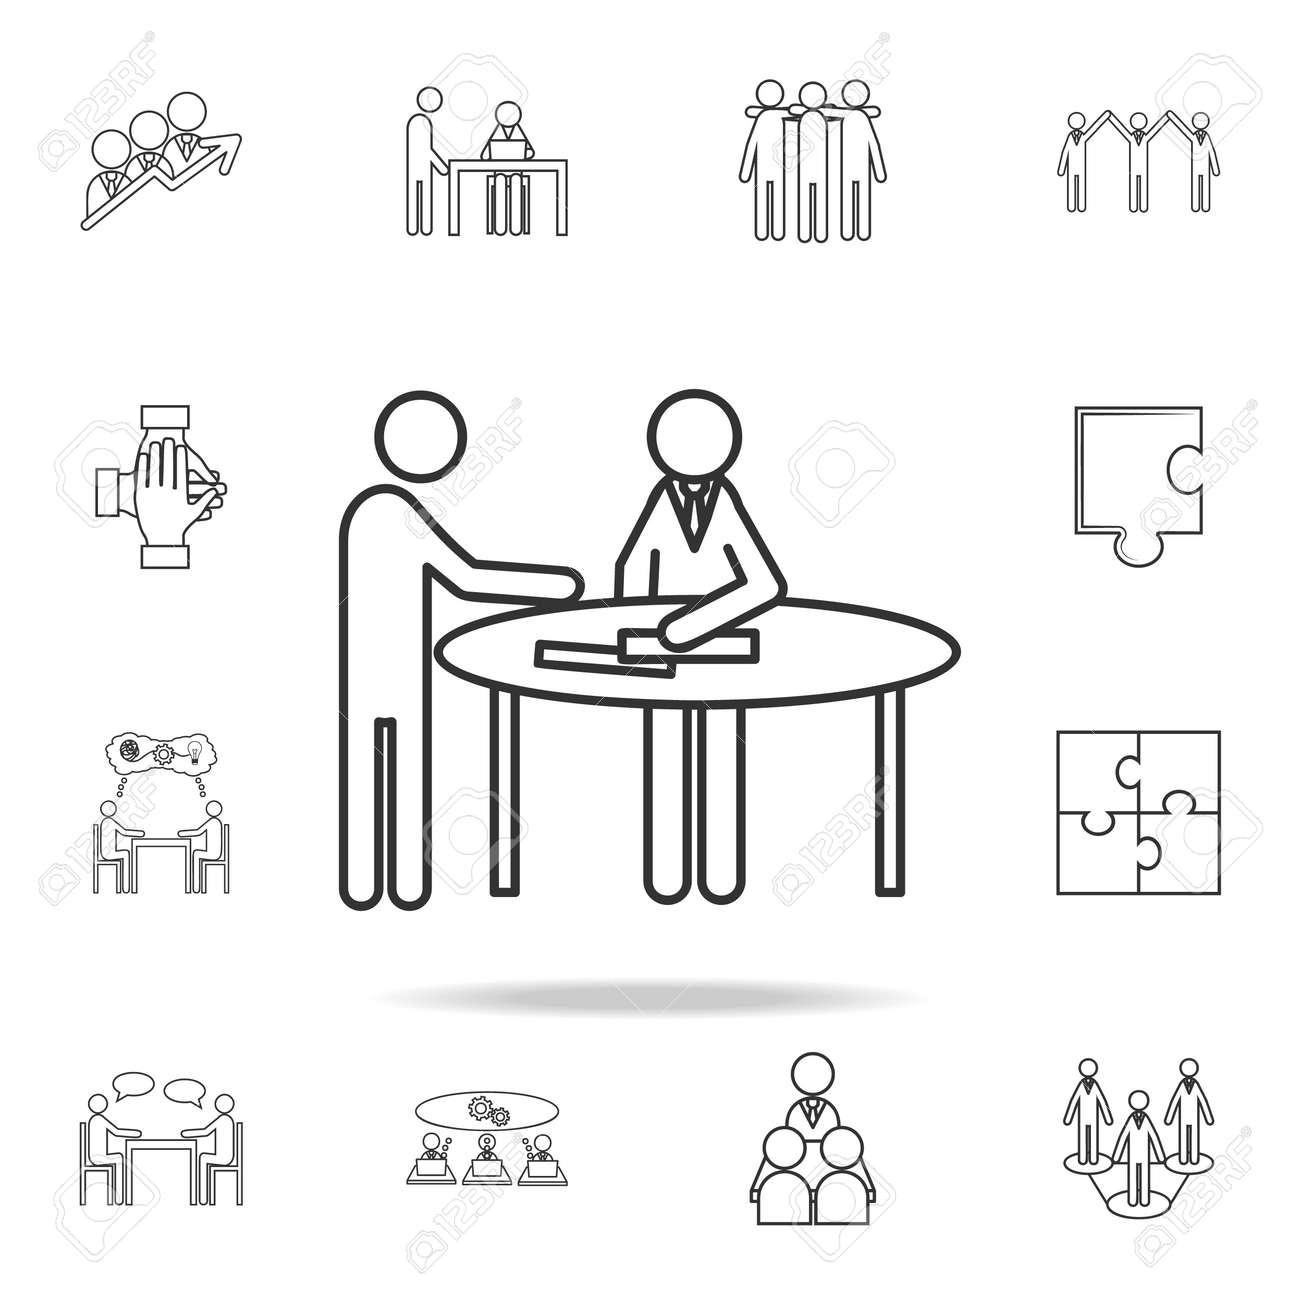 Front Desk Line Icon. Detailed Set Of Team Work Outline Icons. Premium  Quality Graphic